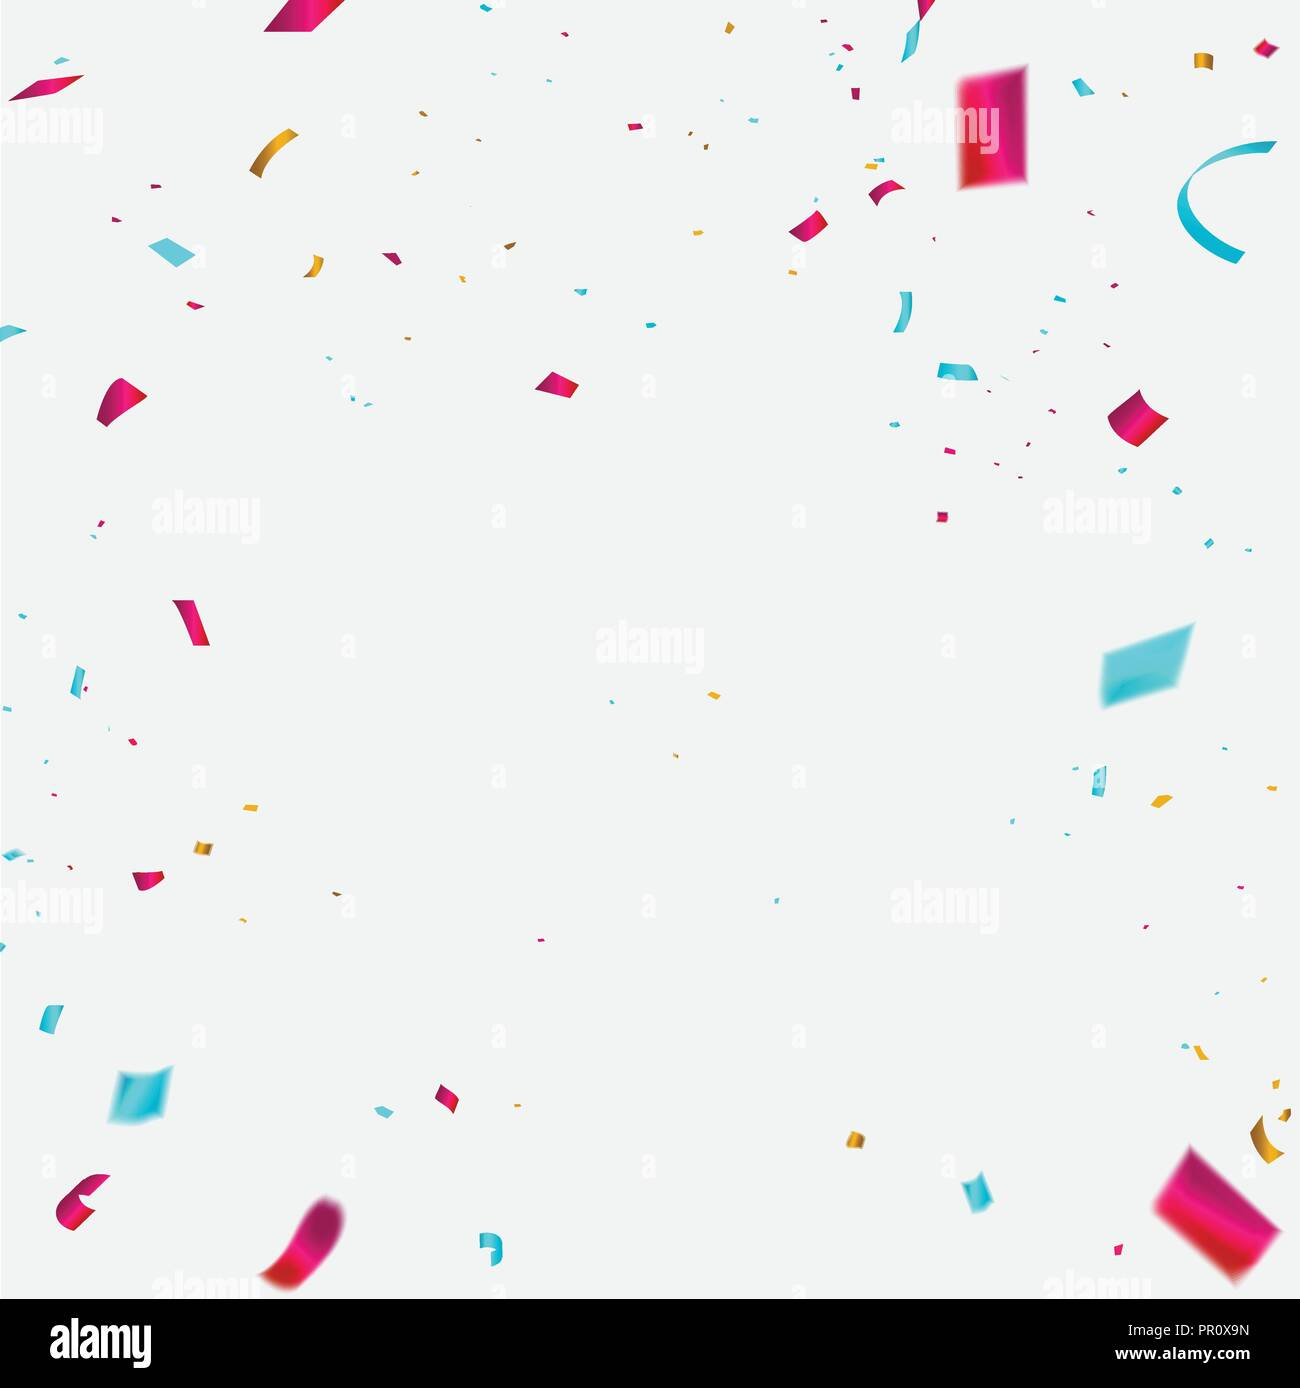 celebration background template with confetti colorful ribbons